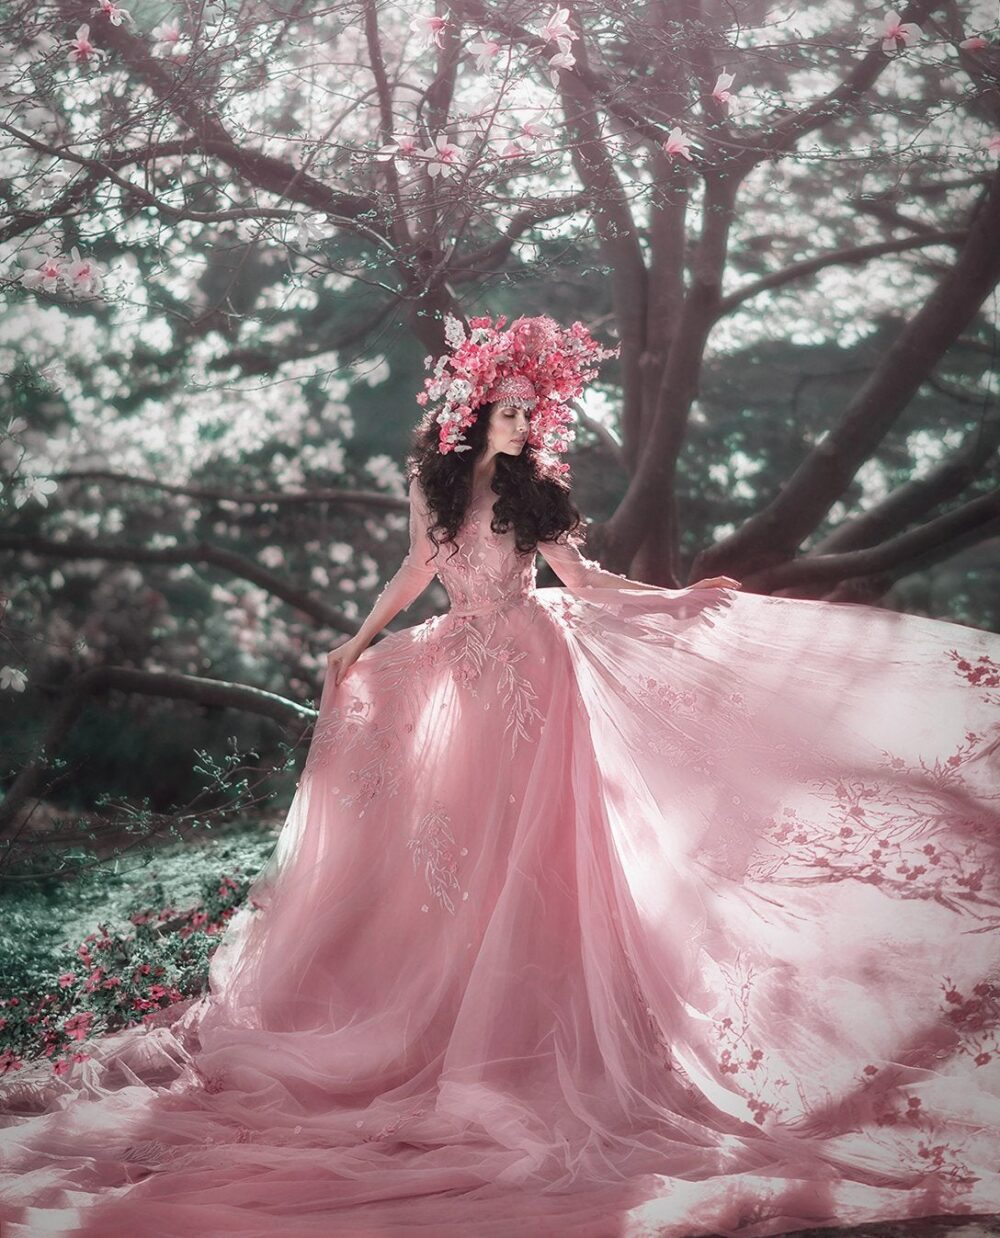 Fairy Couture Blush Wedding Dress With 3D Flower - Long Train Alternative Unique Color Gown